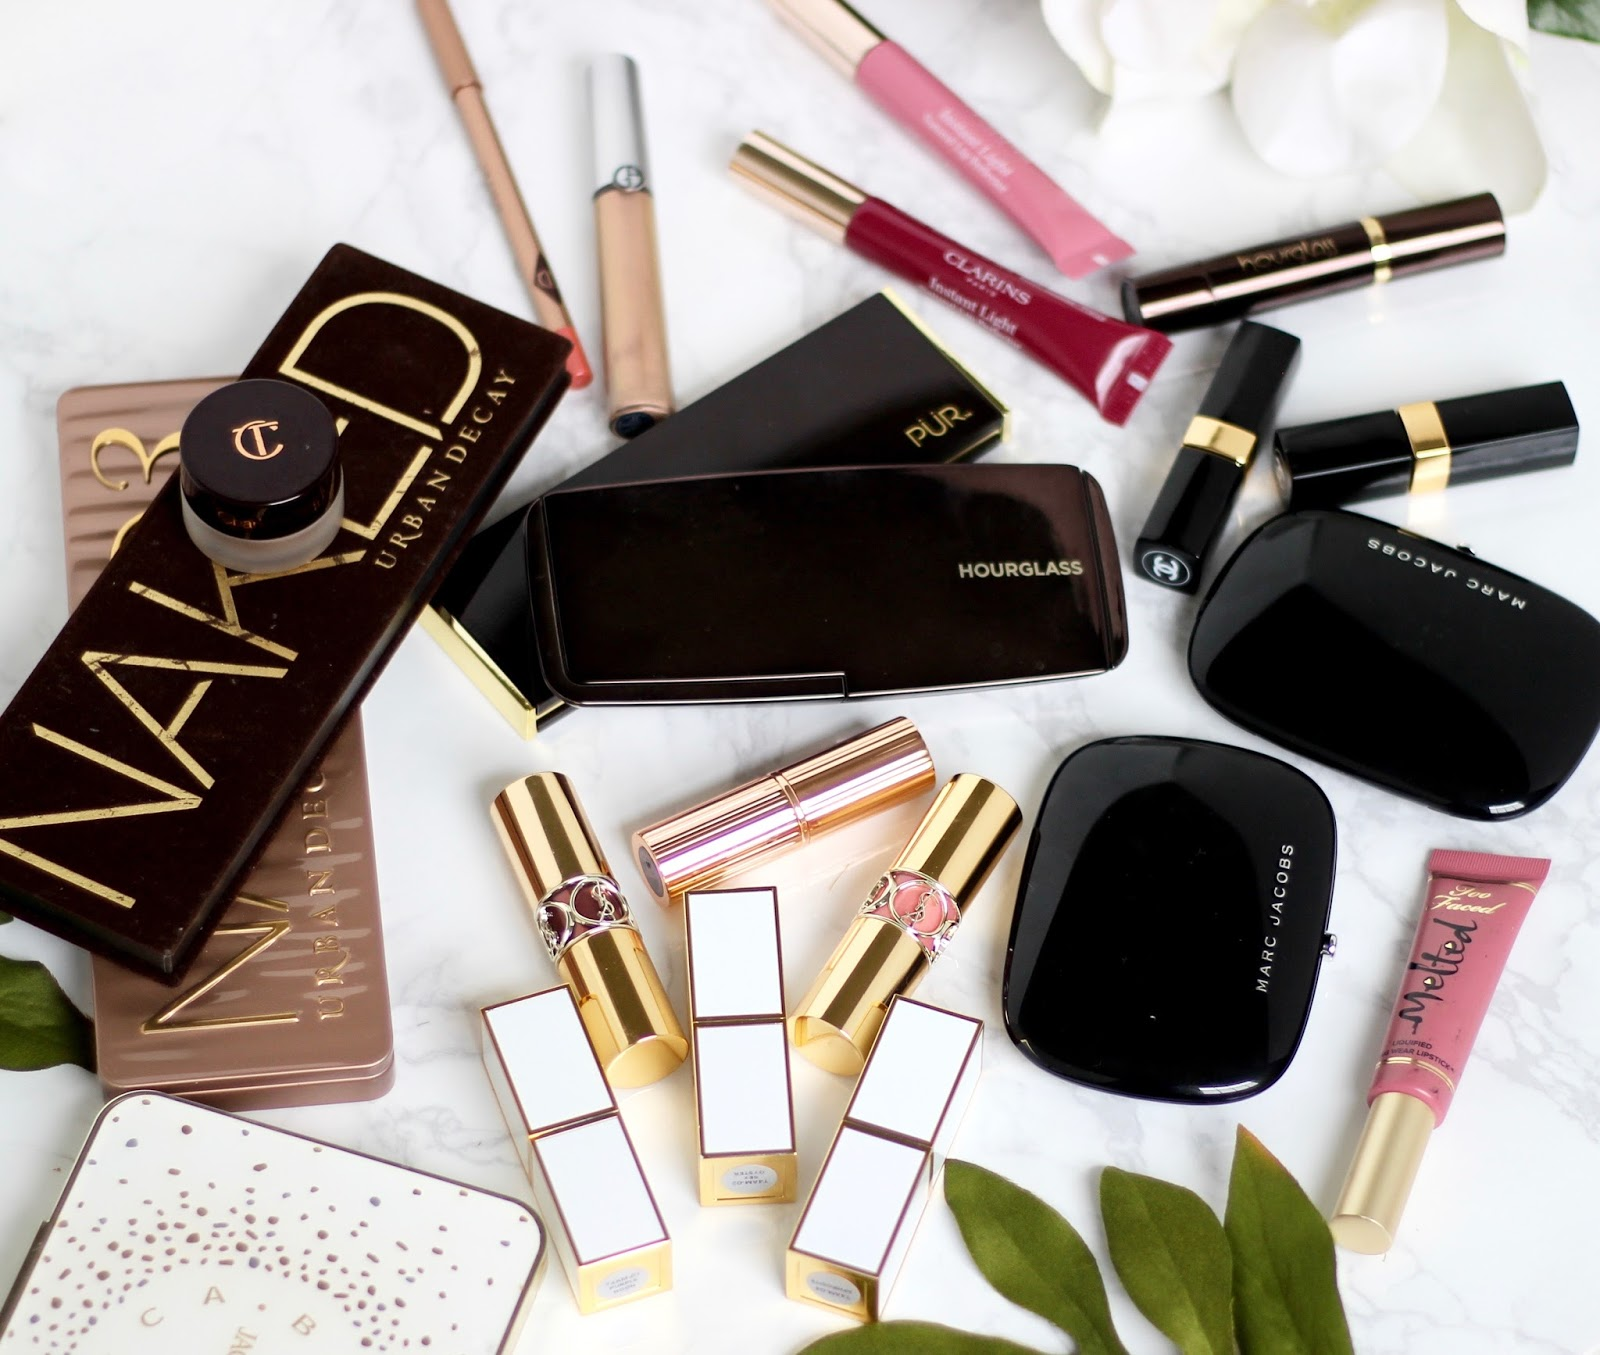 How to get beauty pr samples